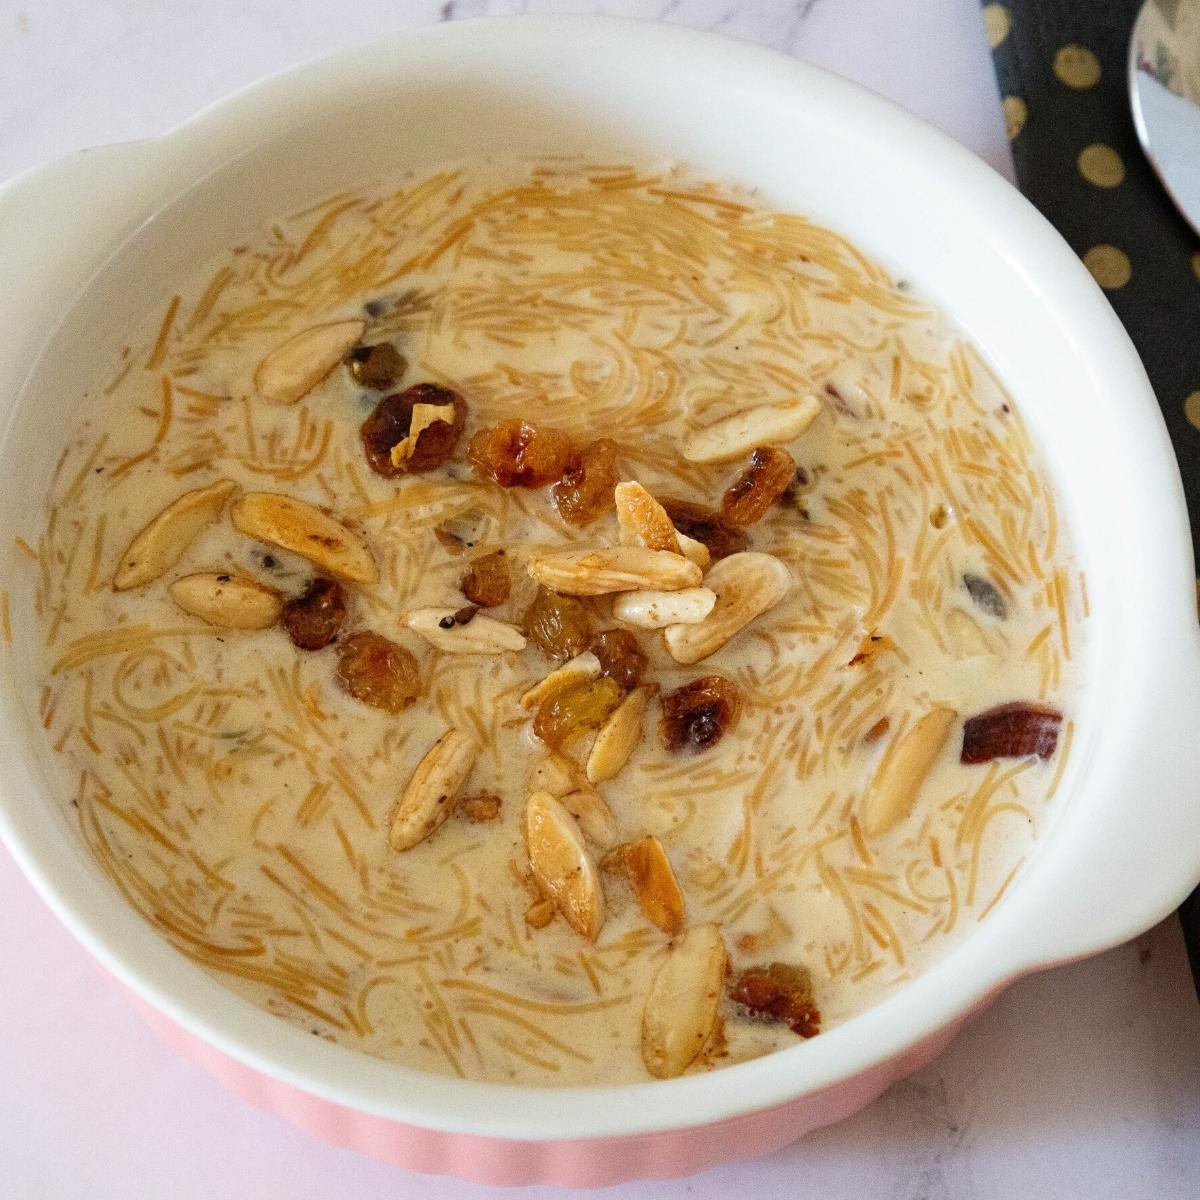 Vermicelli pudding in a bowl with nuts.